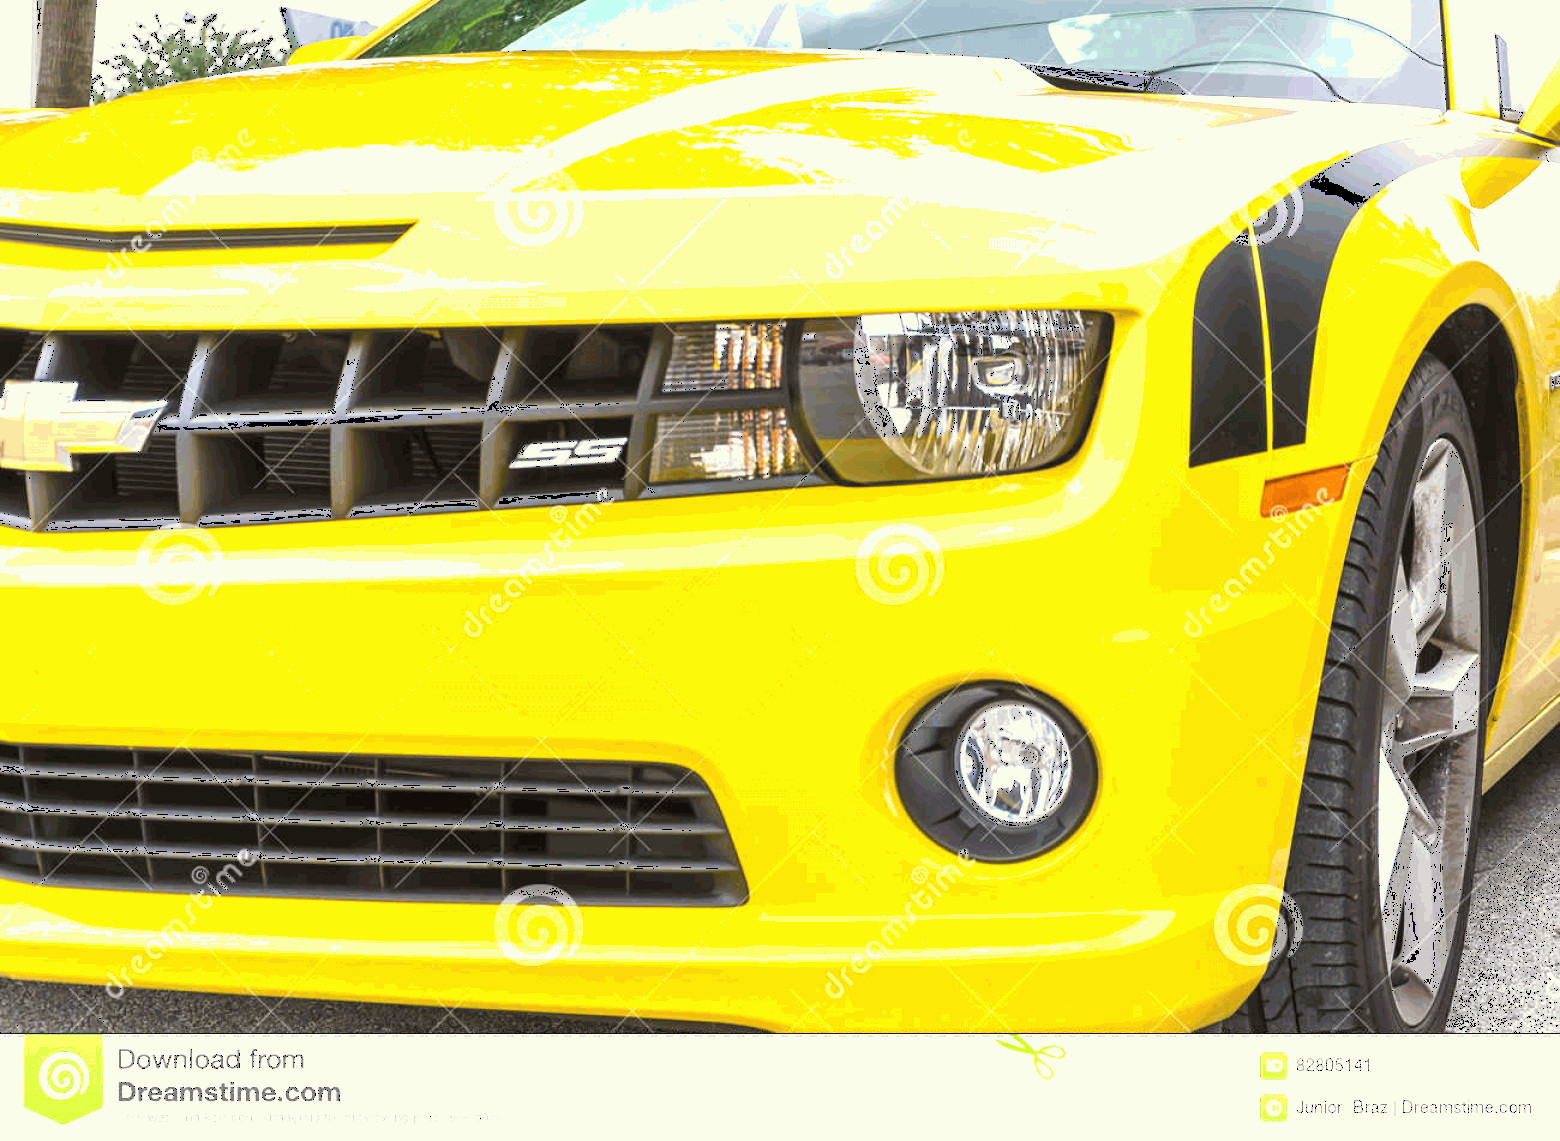 Camaro SS Logo Vector: Editorial Photo Yellow Chevrolet Camaro Ss Convertible Front Side Details Miami Usa September Fifth Generation Was Introduced Image